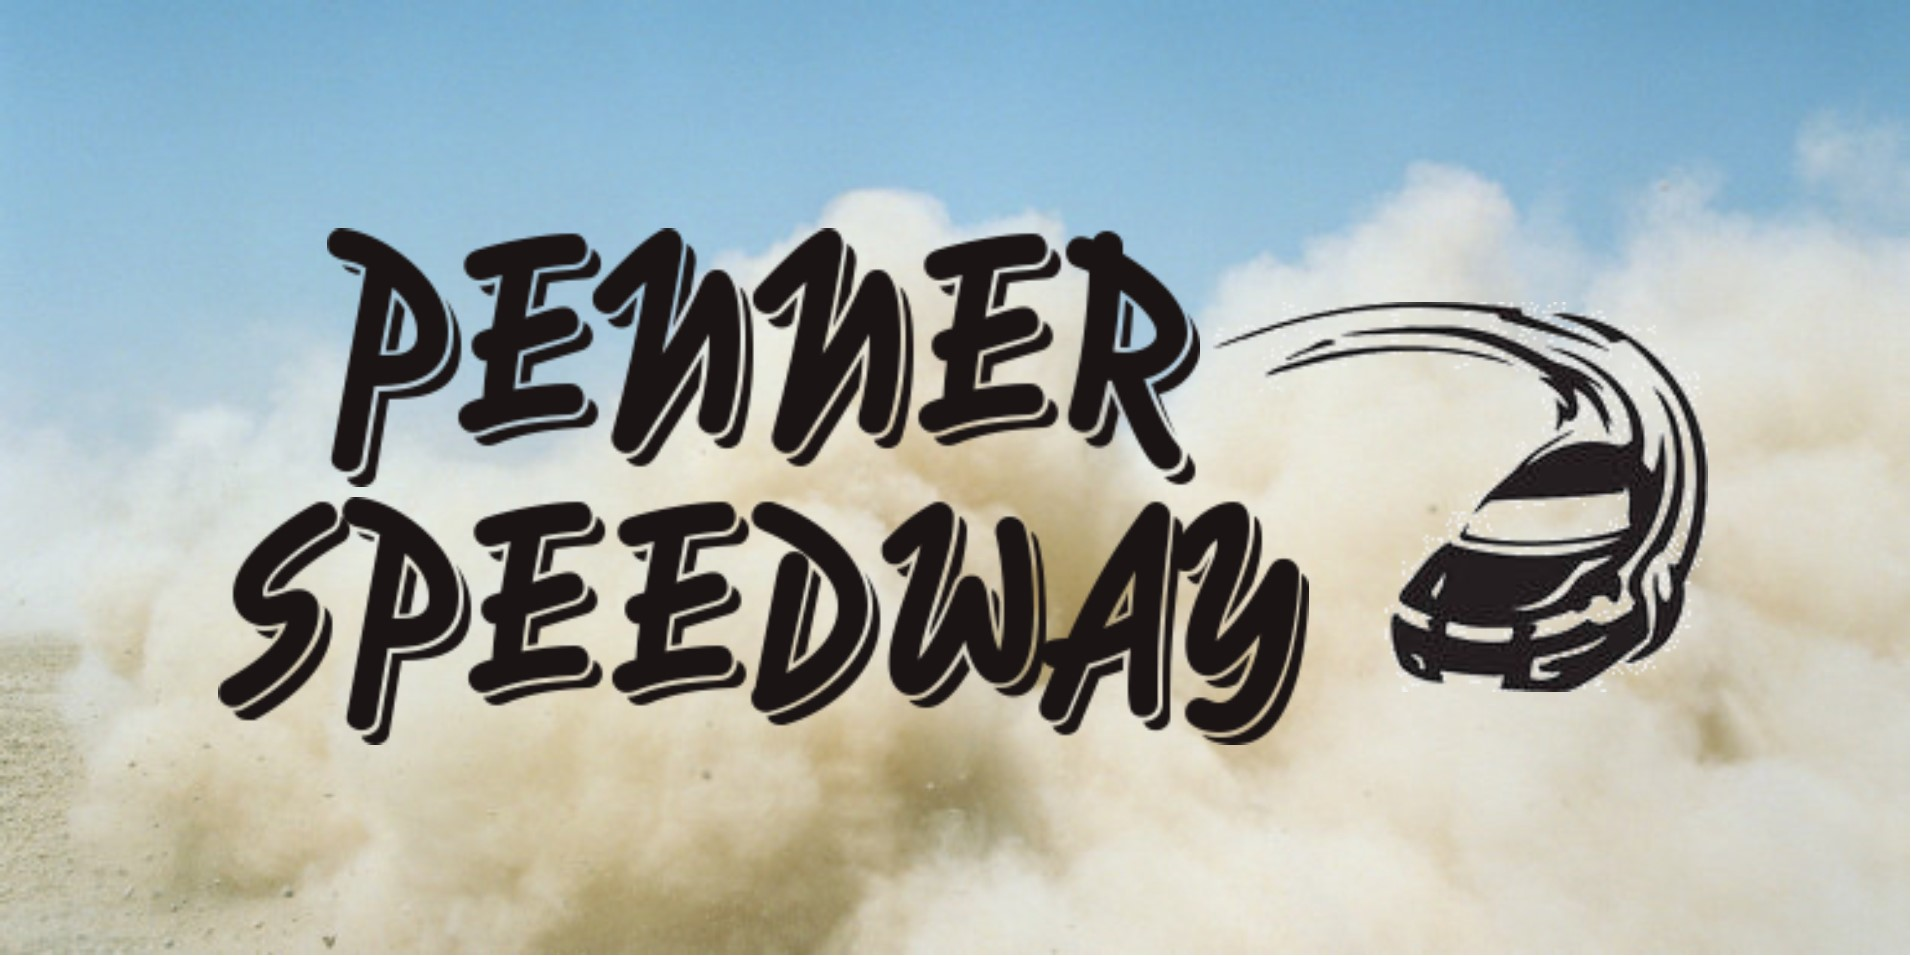 Penner Speedway